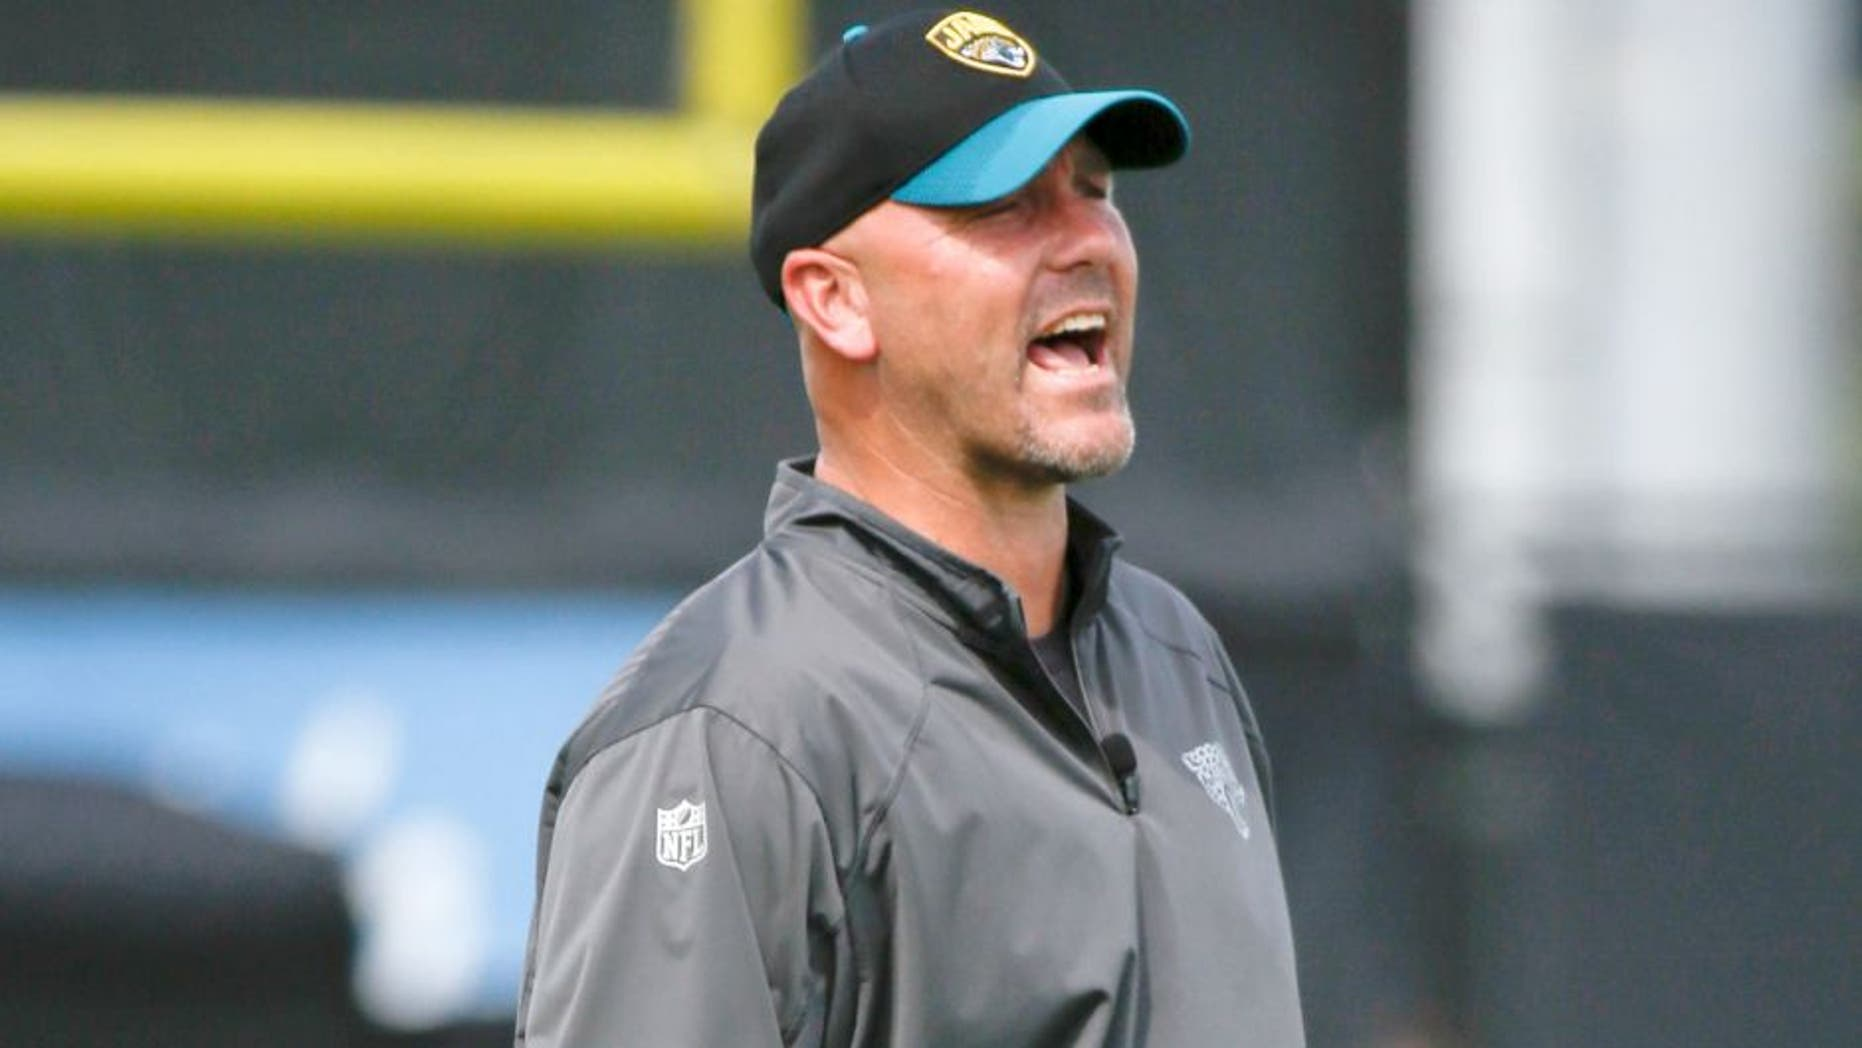 Jacksonville Jaguars head coach Gus Bradley shouts instructions to players during NFL football organized training activities, Tuesday, May 26, 2015, in Jacksonville, Fla. (AP Photo/John Raoux)